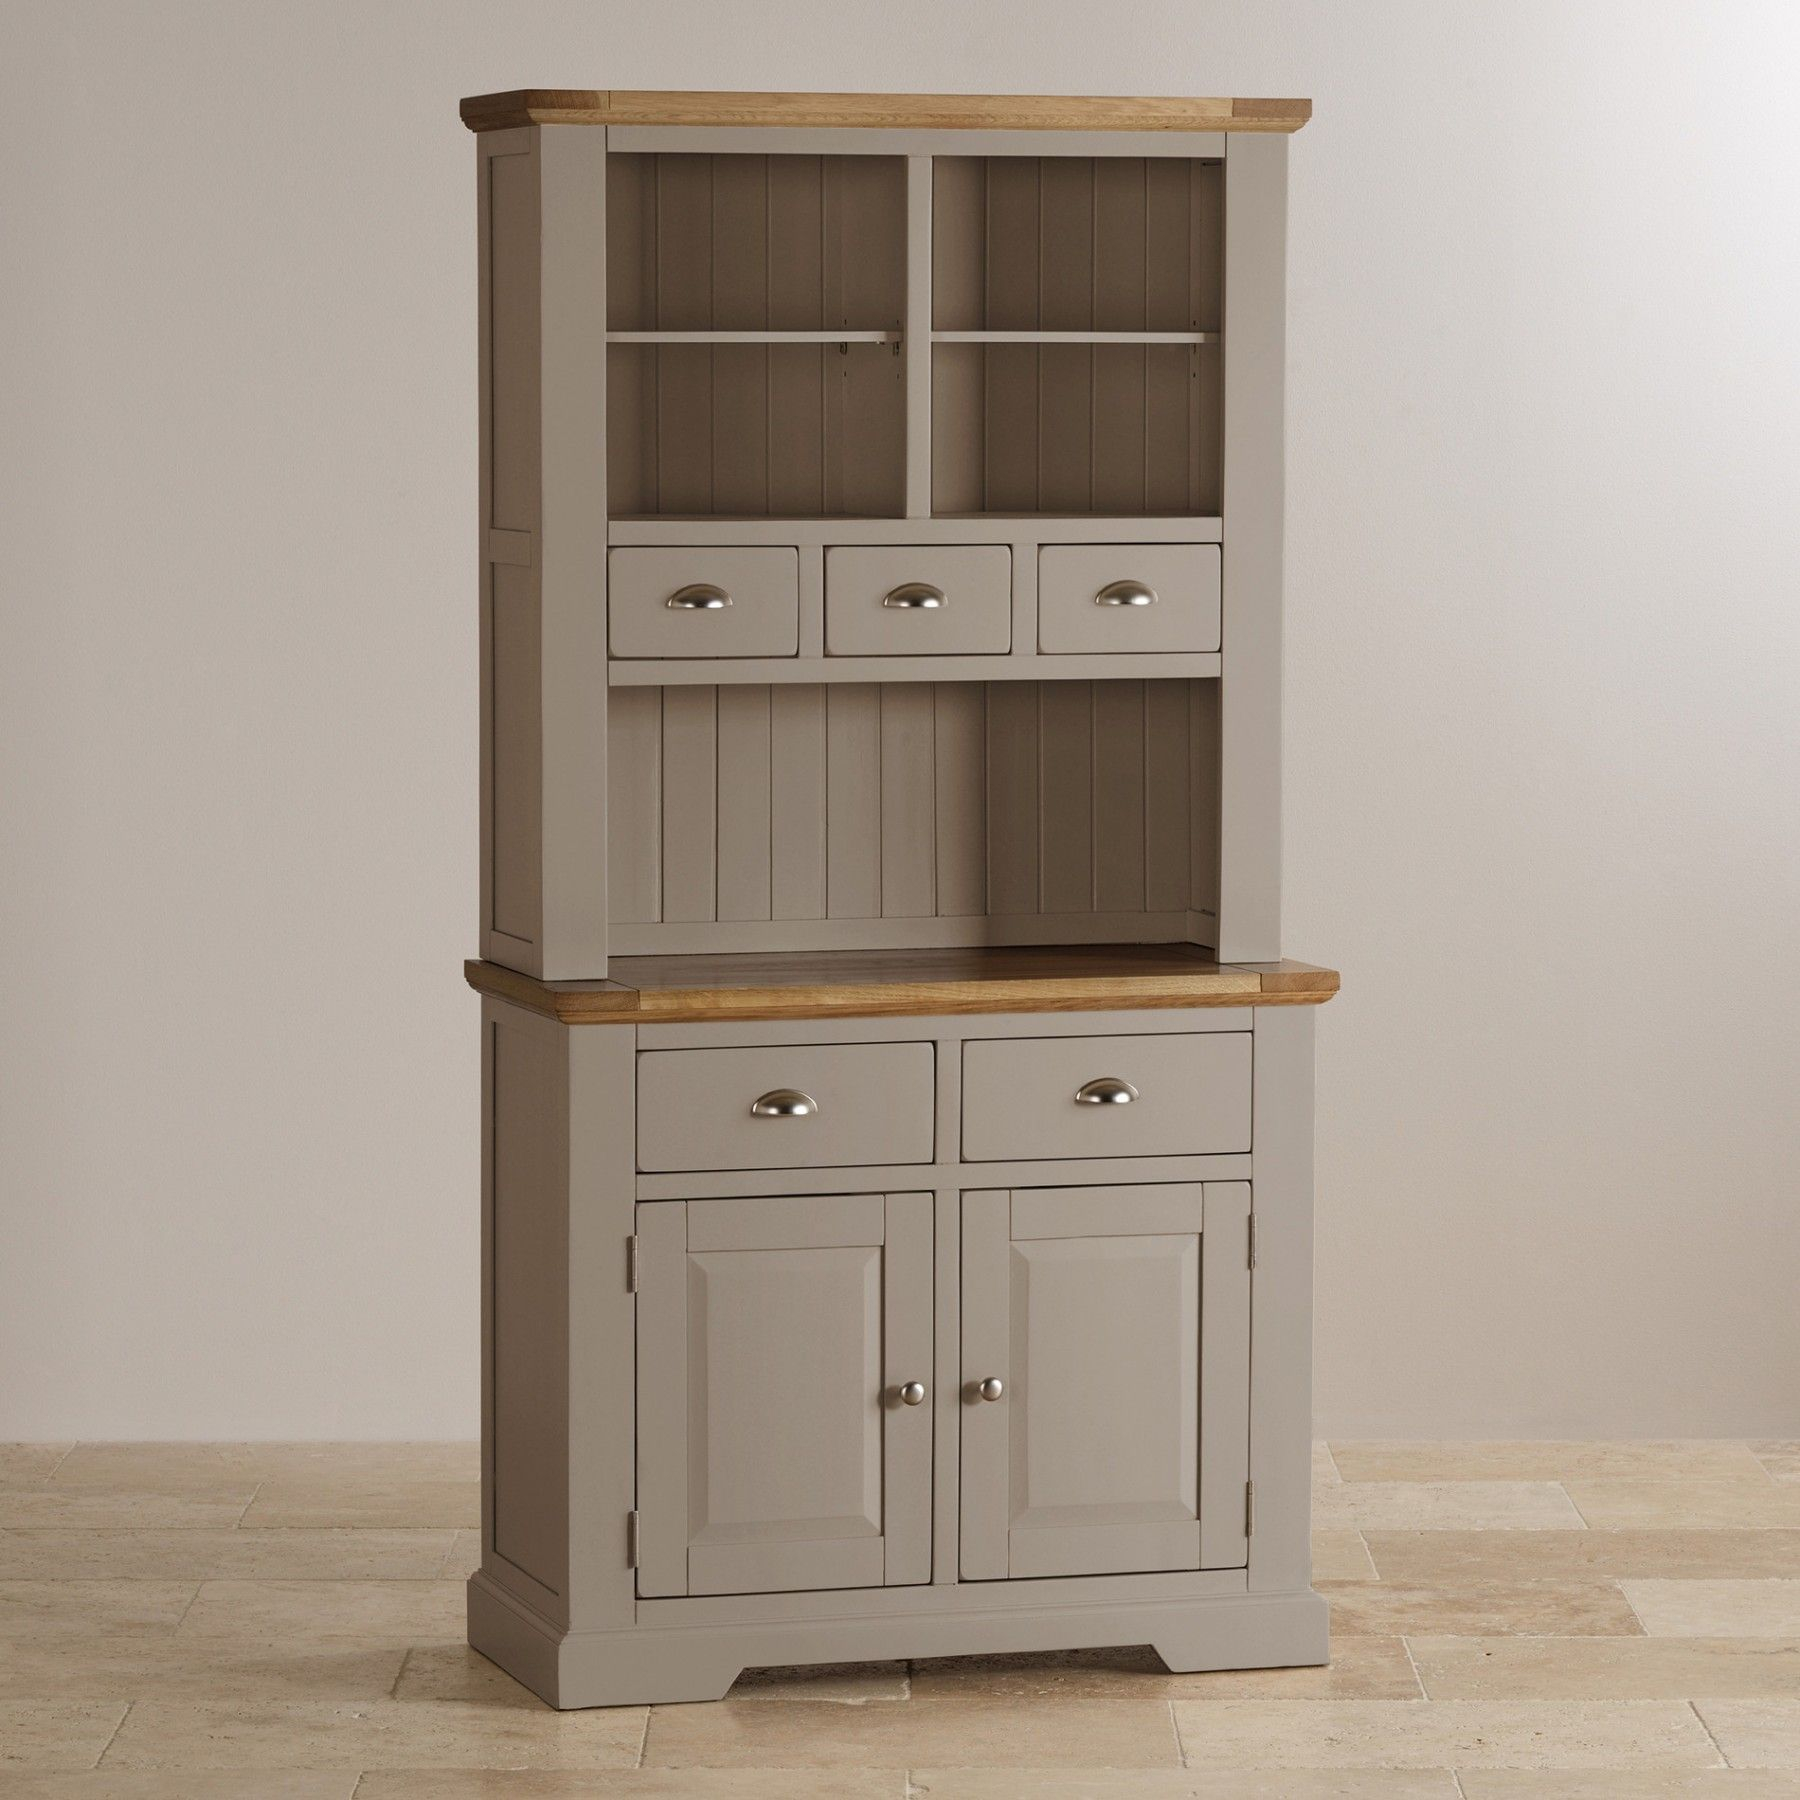 St Ives Natural Oak And Light Gray Painted Small Hutch  Kitchen Prepossessing Small Hutches Dining Room 2018